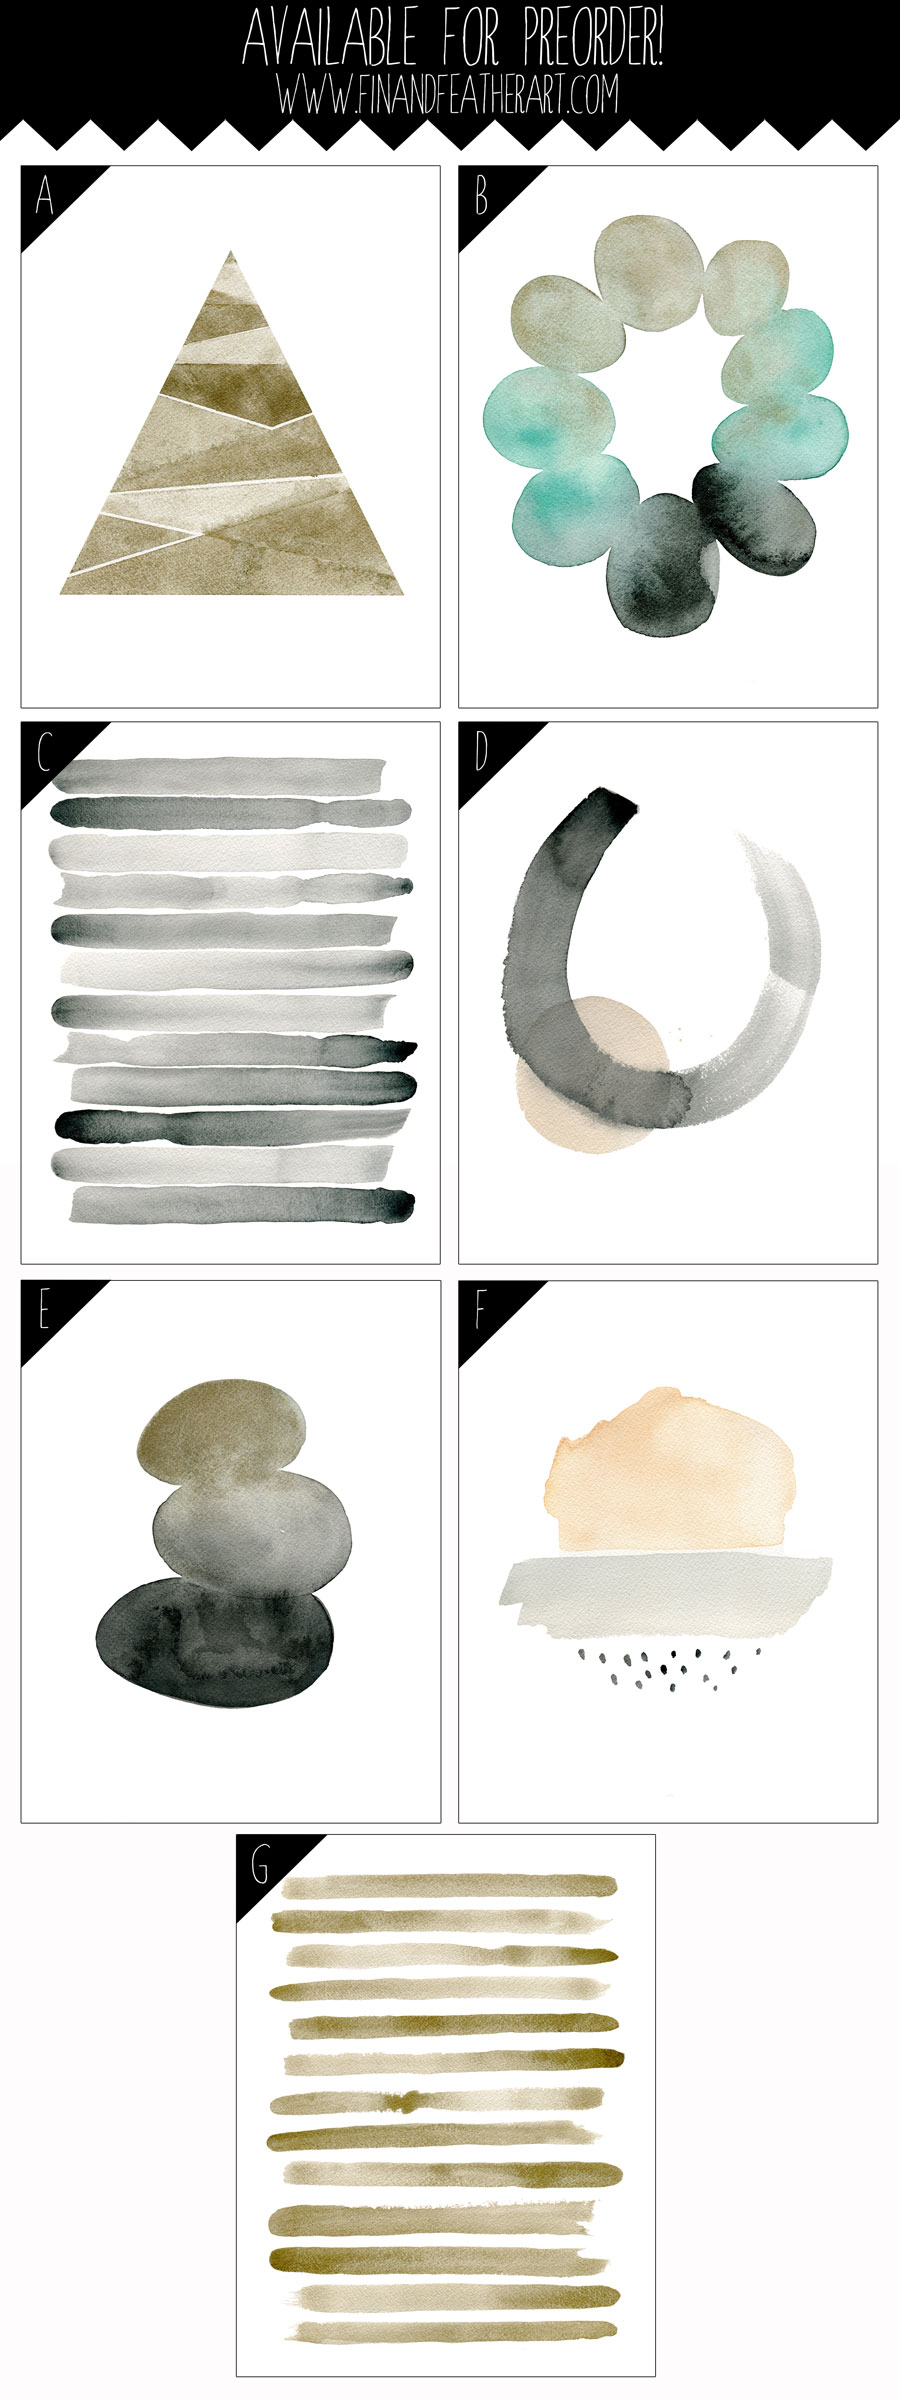 Watercolor Abstracts available for Pre-Order!